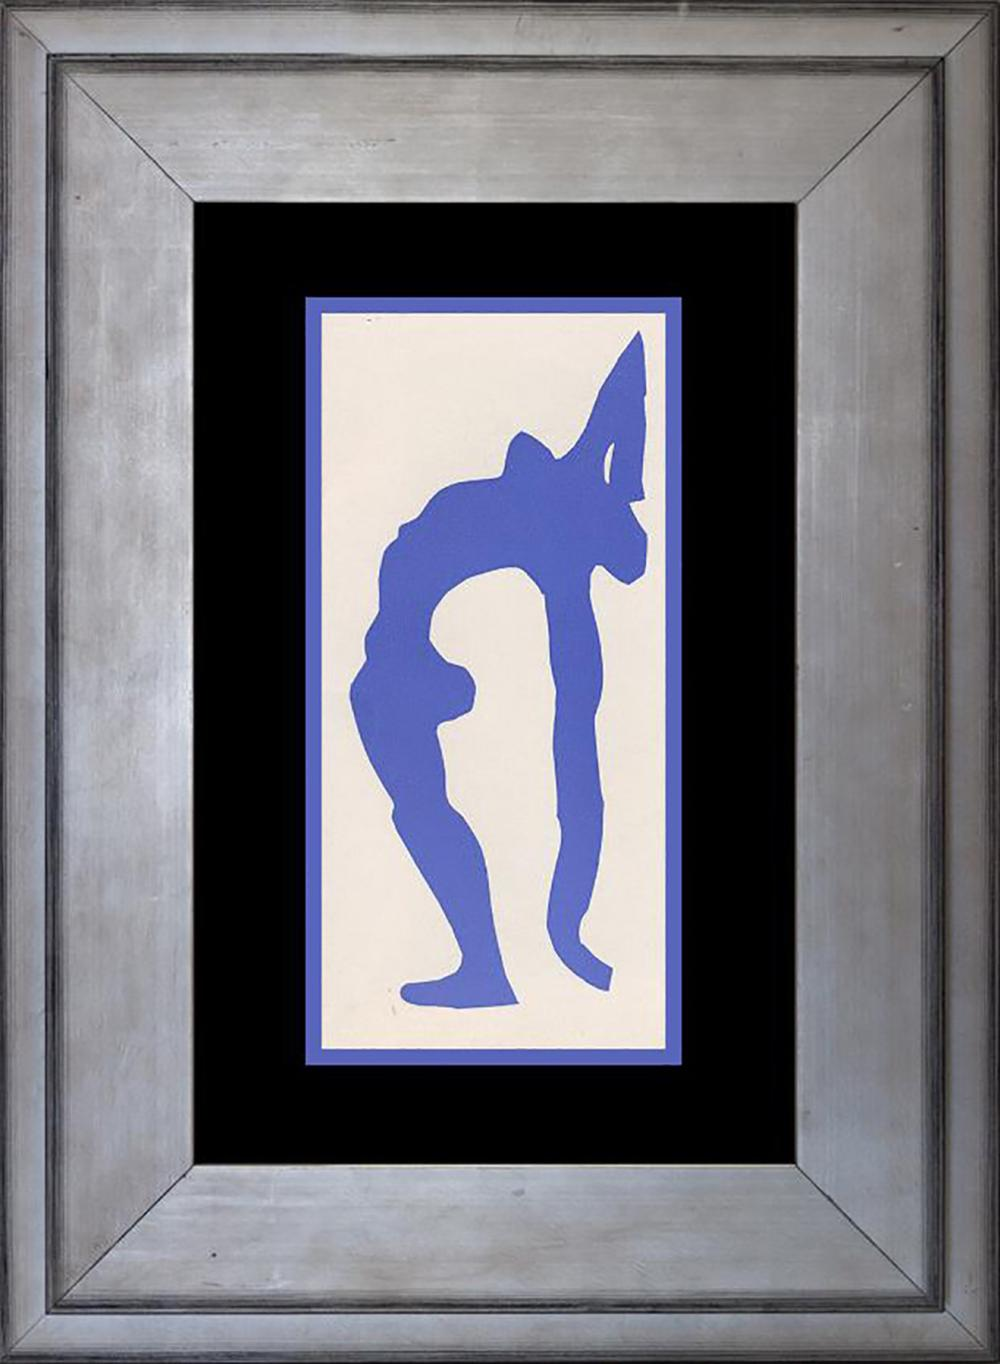 Lot 2692: Henri Matisse Lithograph from 1968